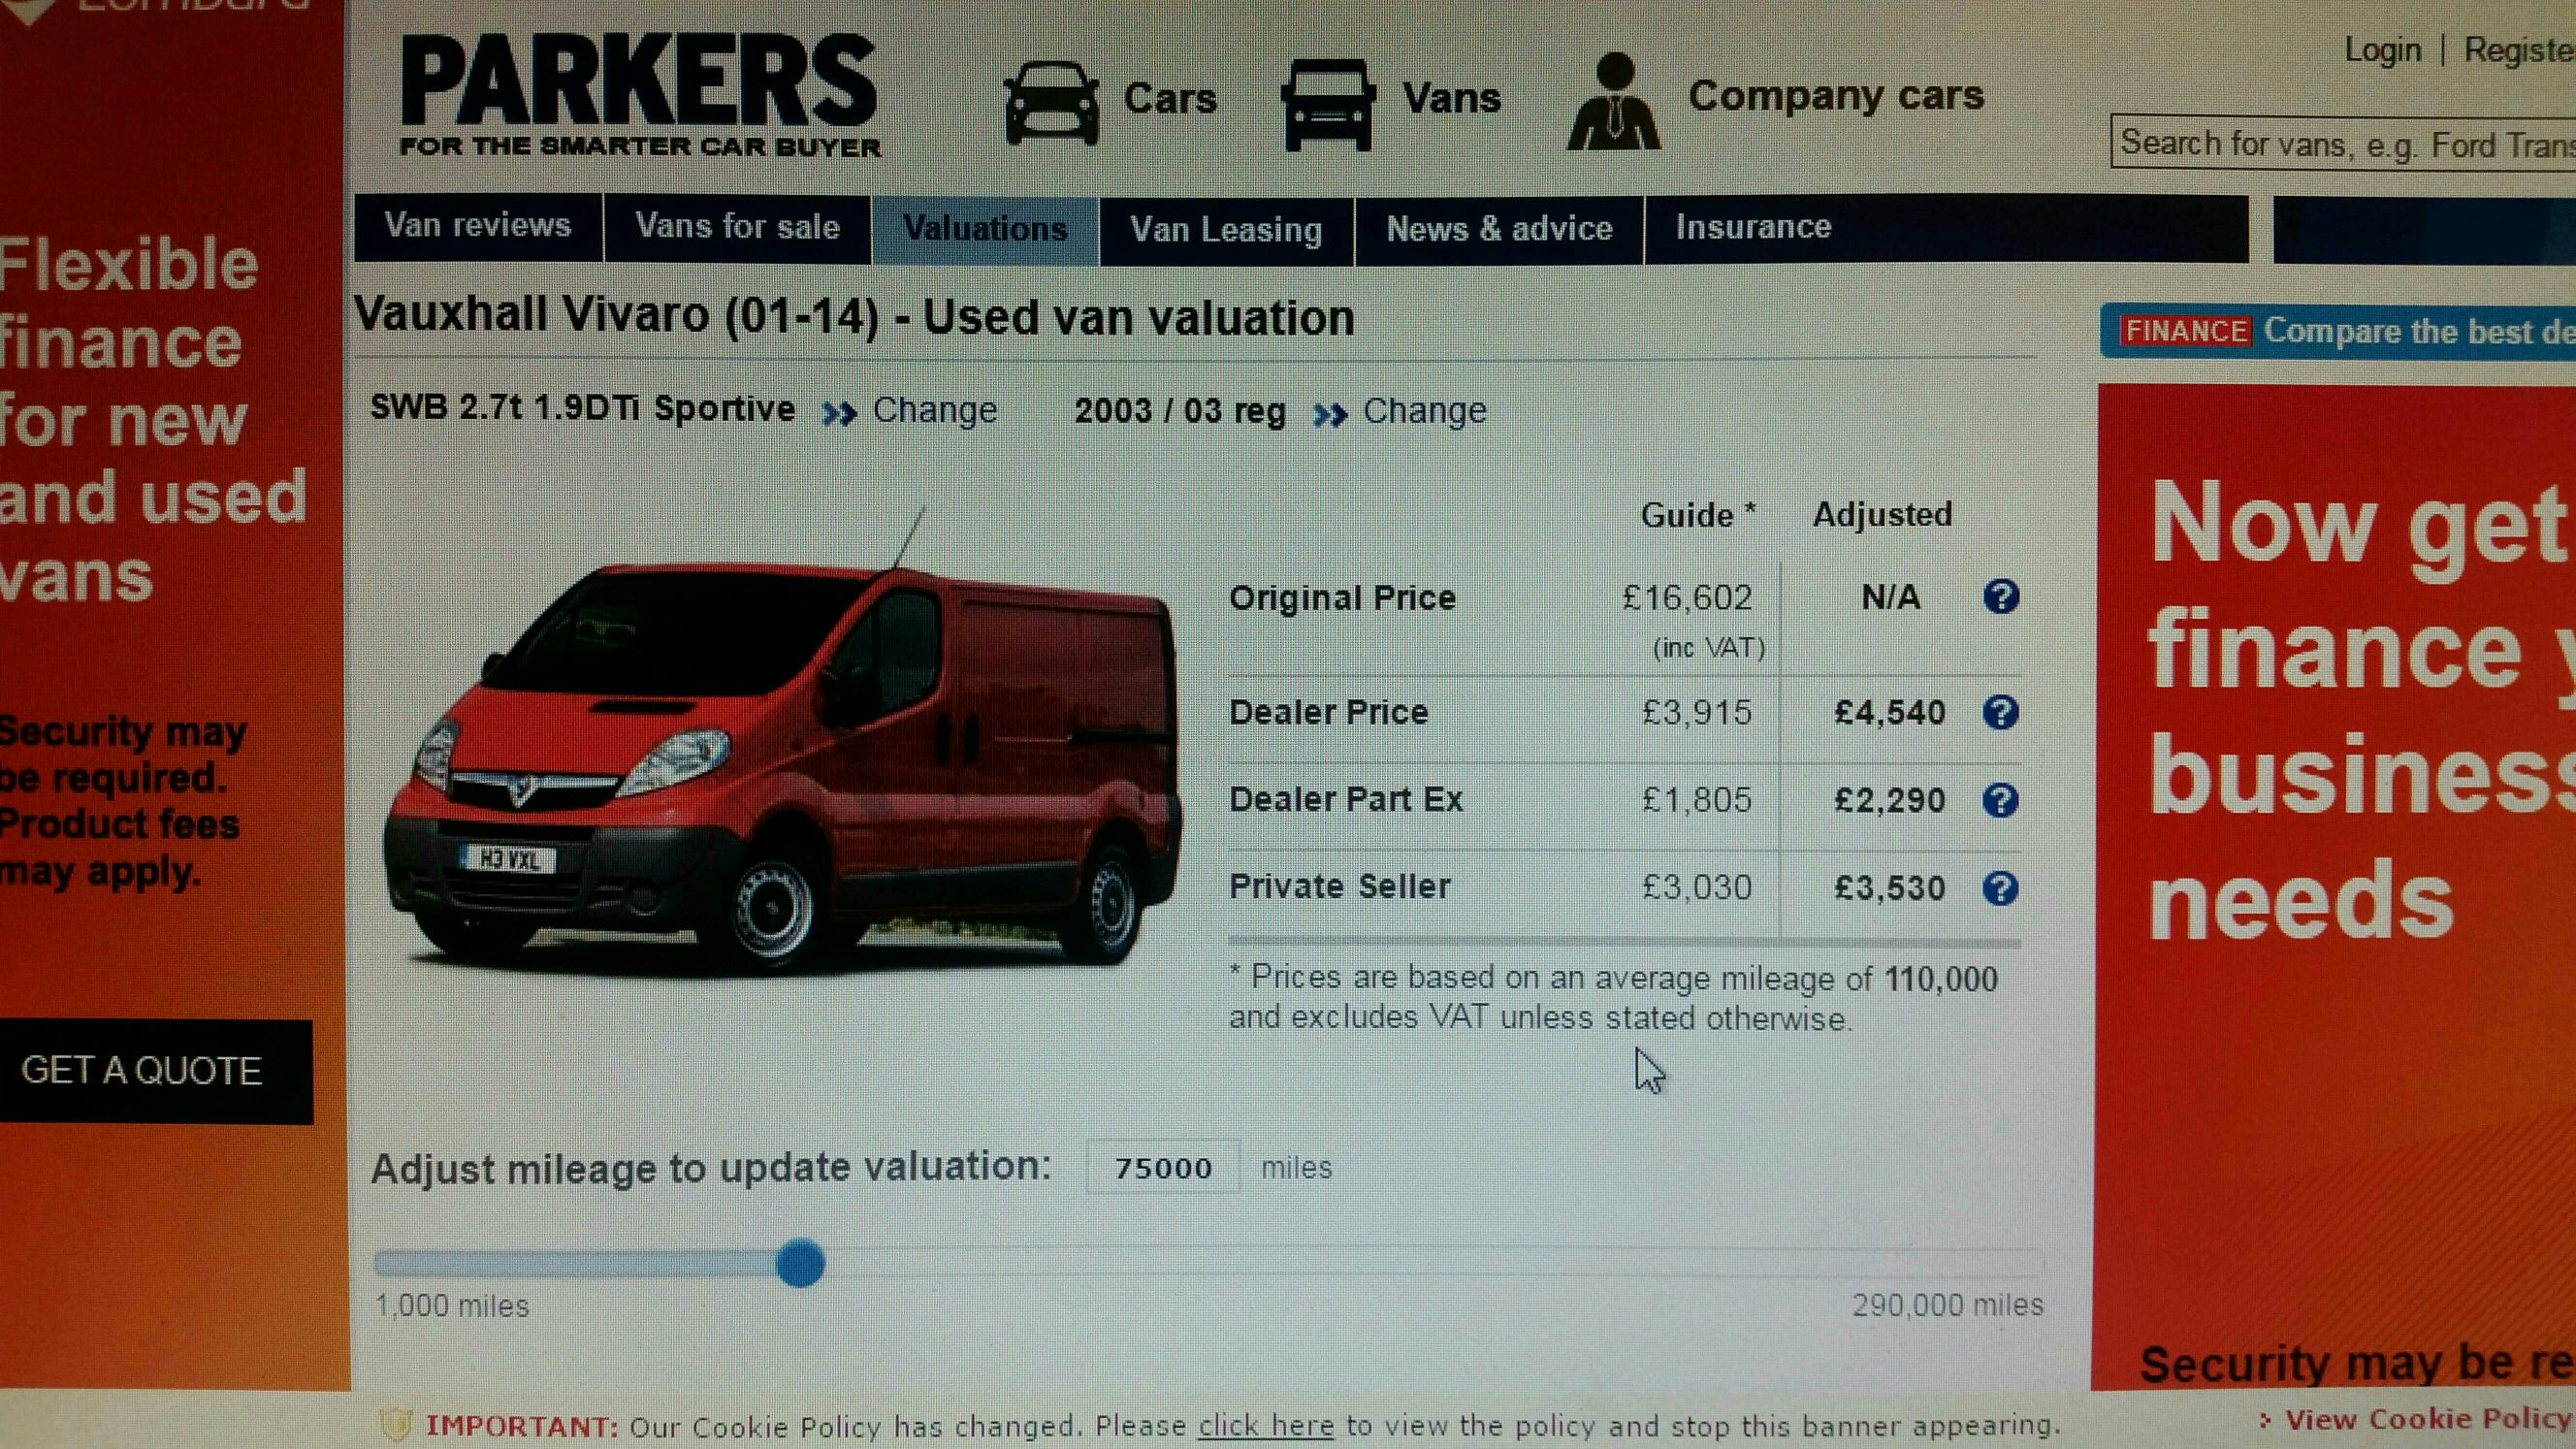 Vivaro] - New to the forum & looking for common faults / problems on